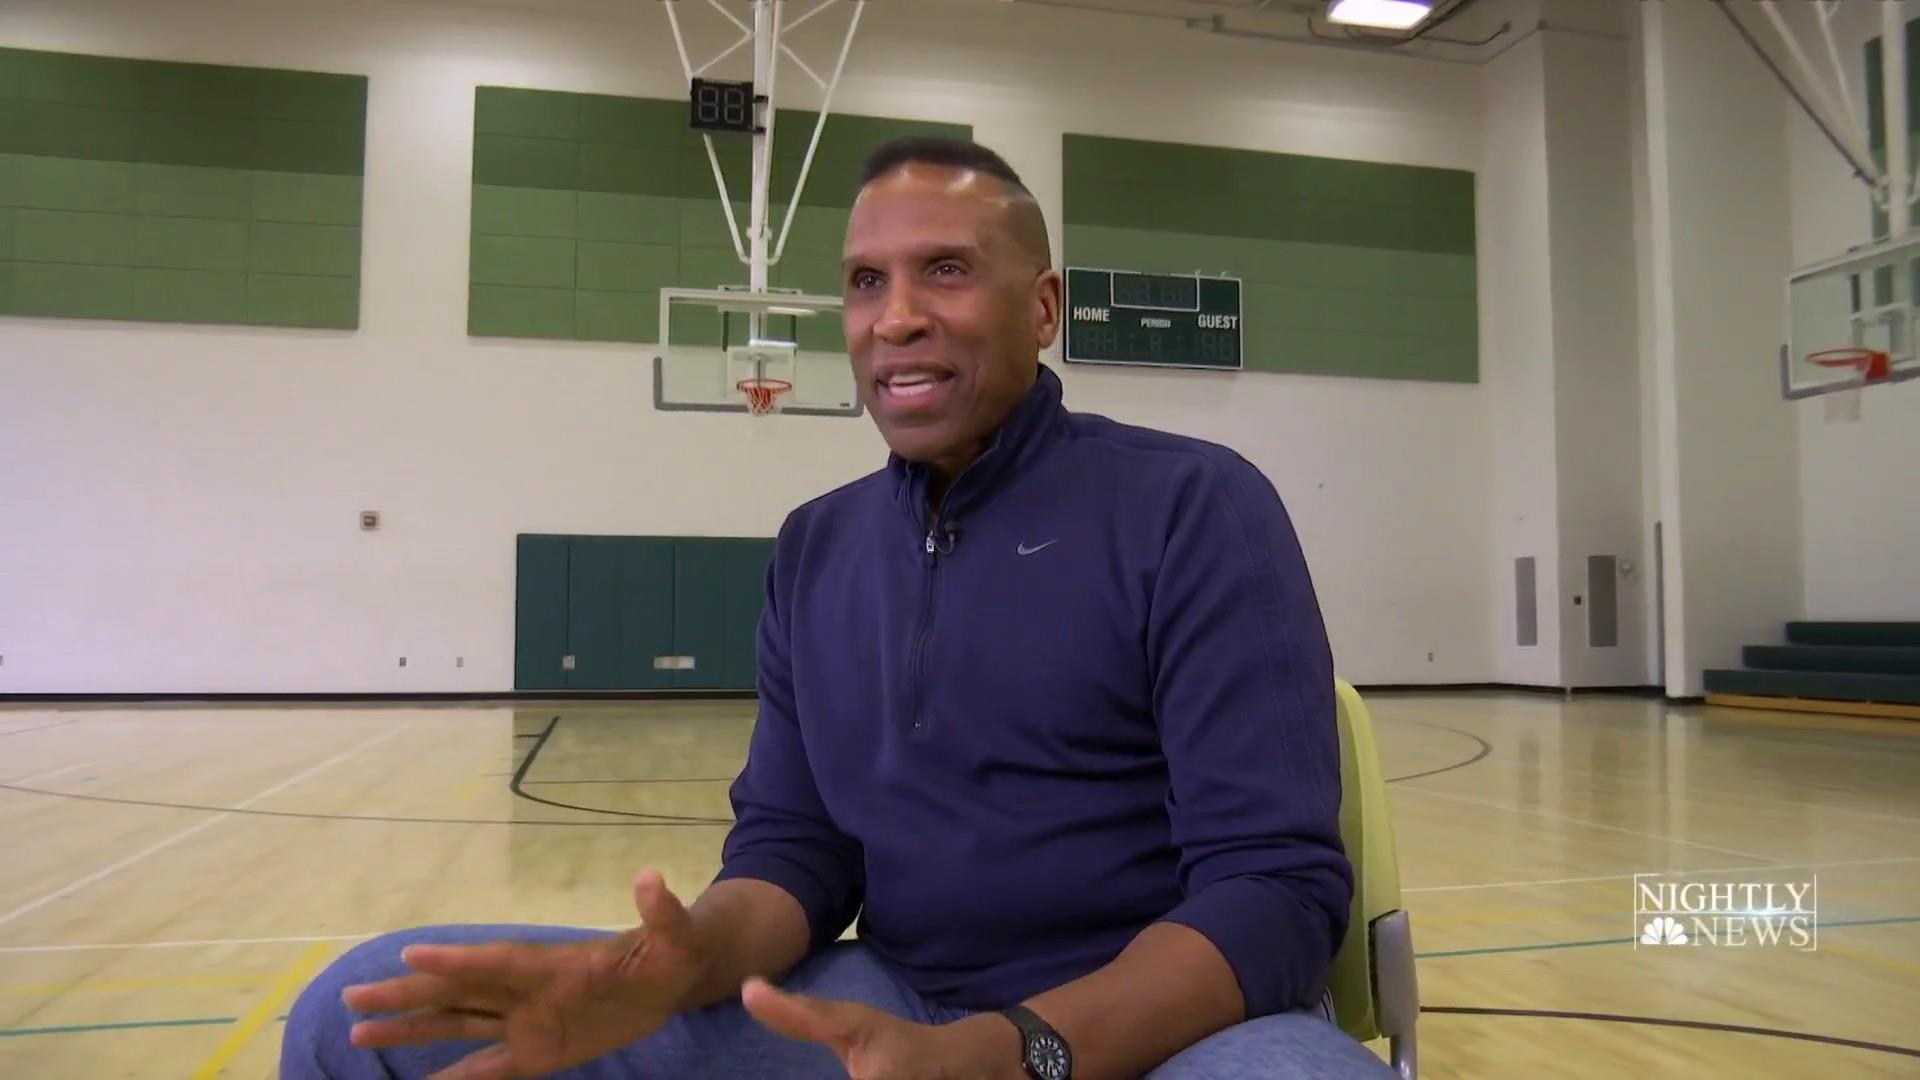 A former NBA superstar gives back to kids in his community